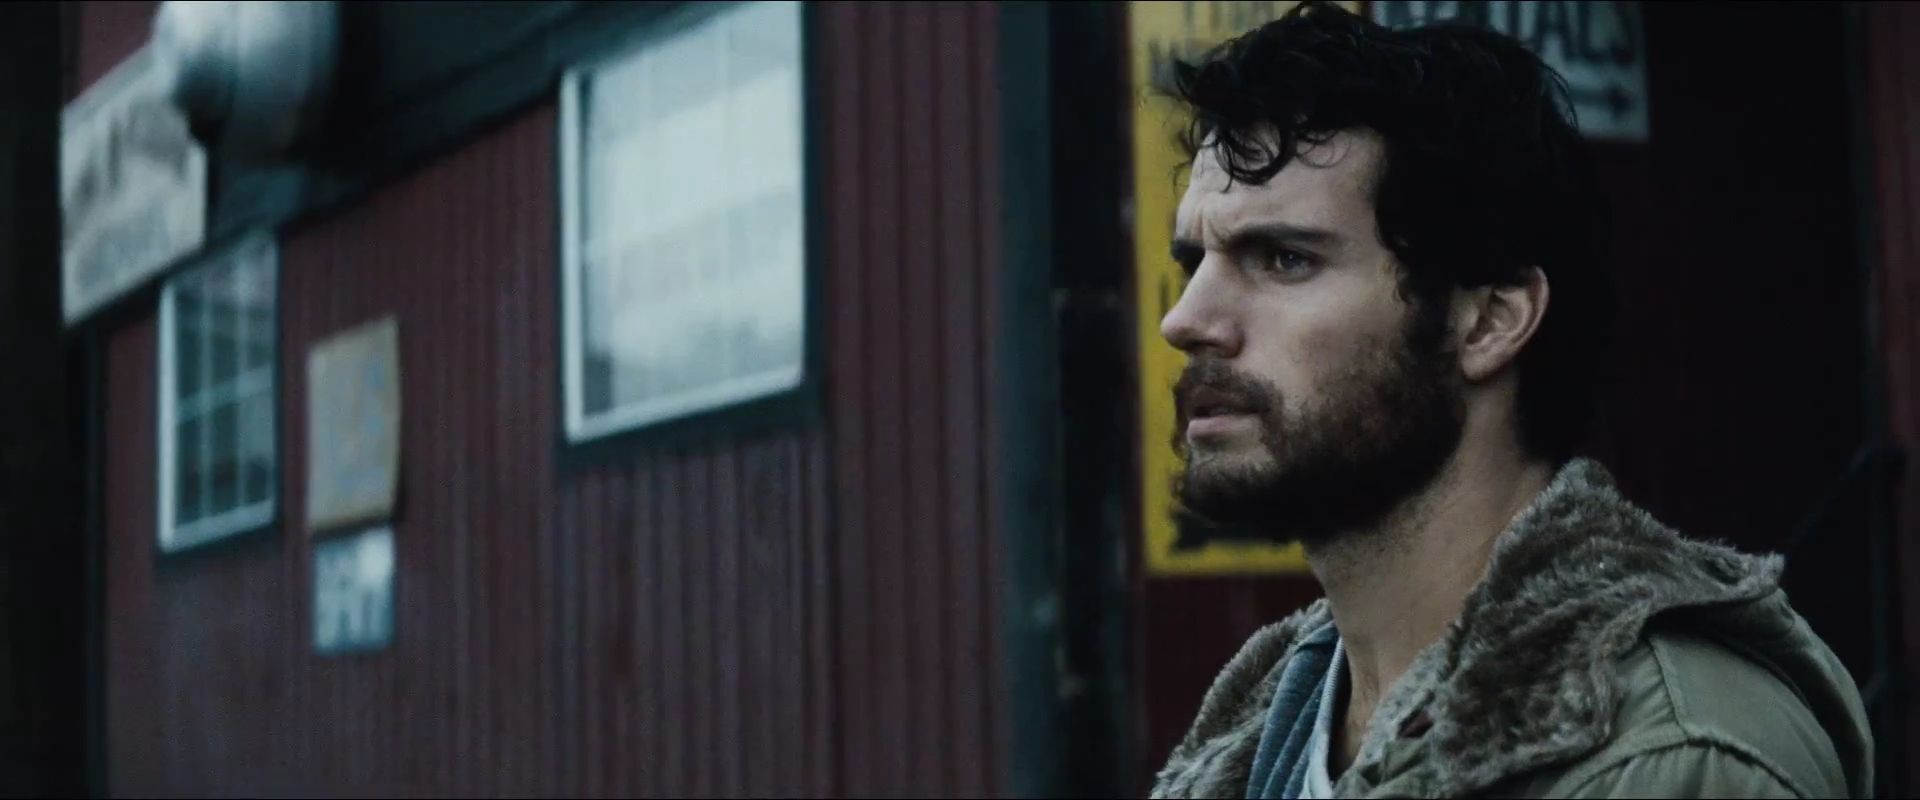 http://lounge.obviousmag.org/sociocratico/2013/07/17/imagens/Man-of-Steel-Trailer-Images-Henry-Cavill-as-Clark-Kent.jpg